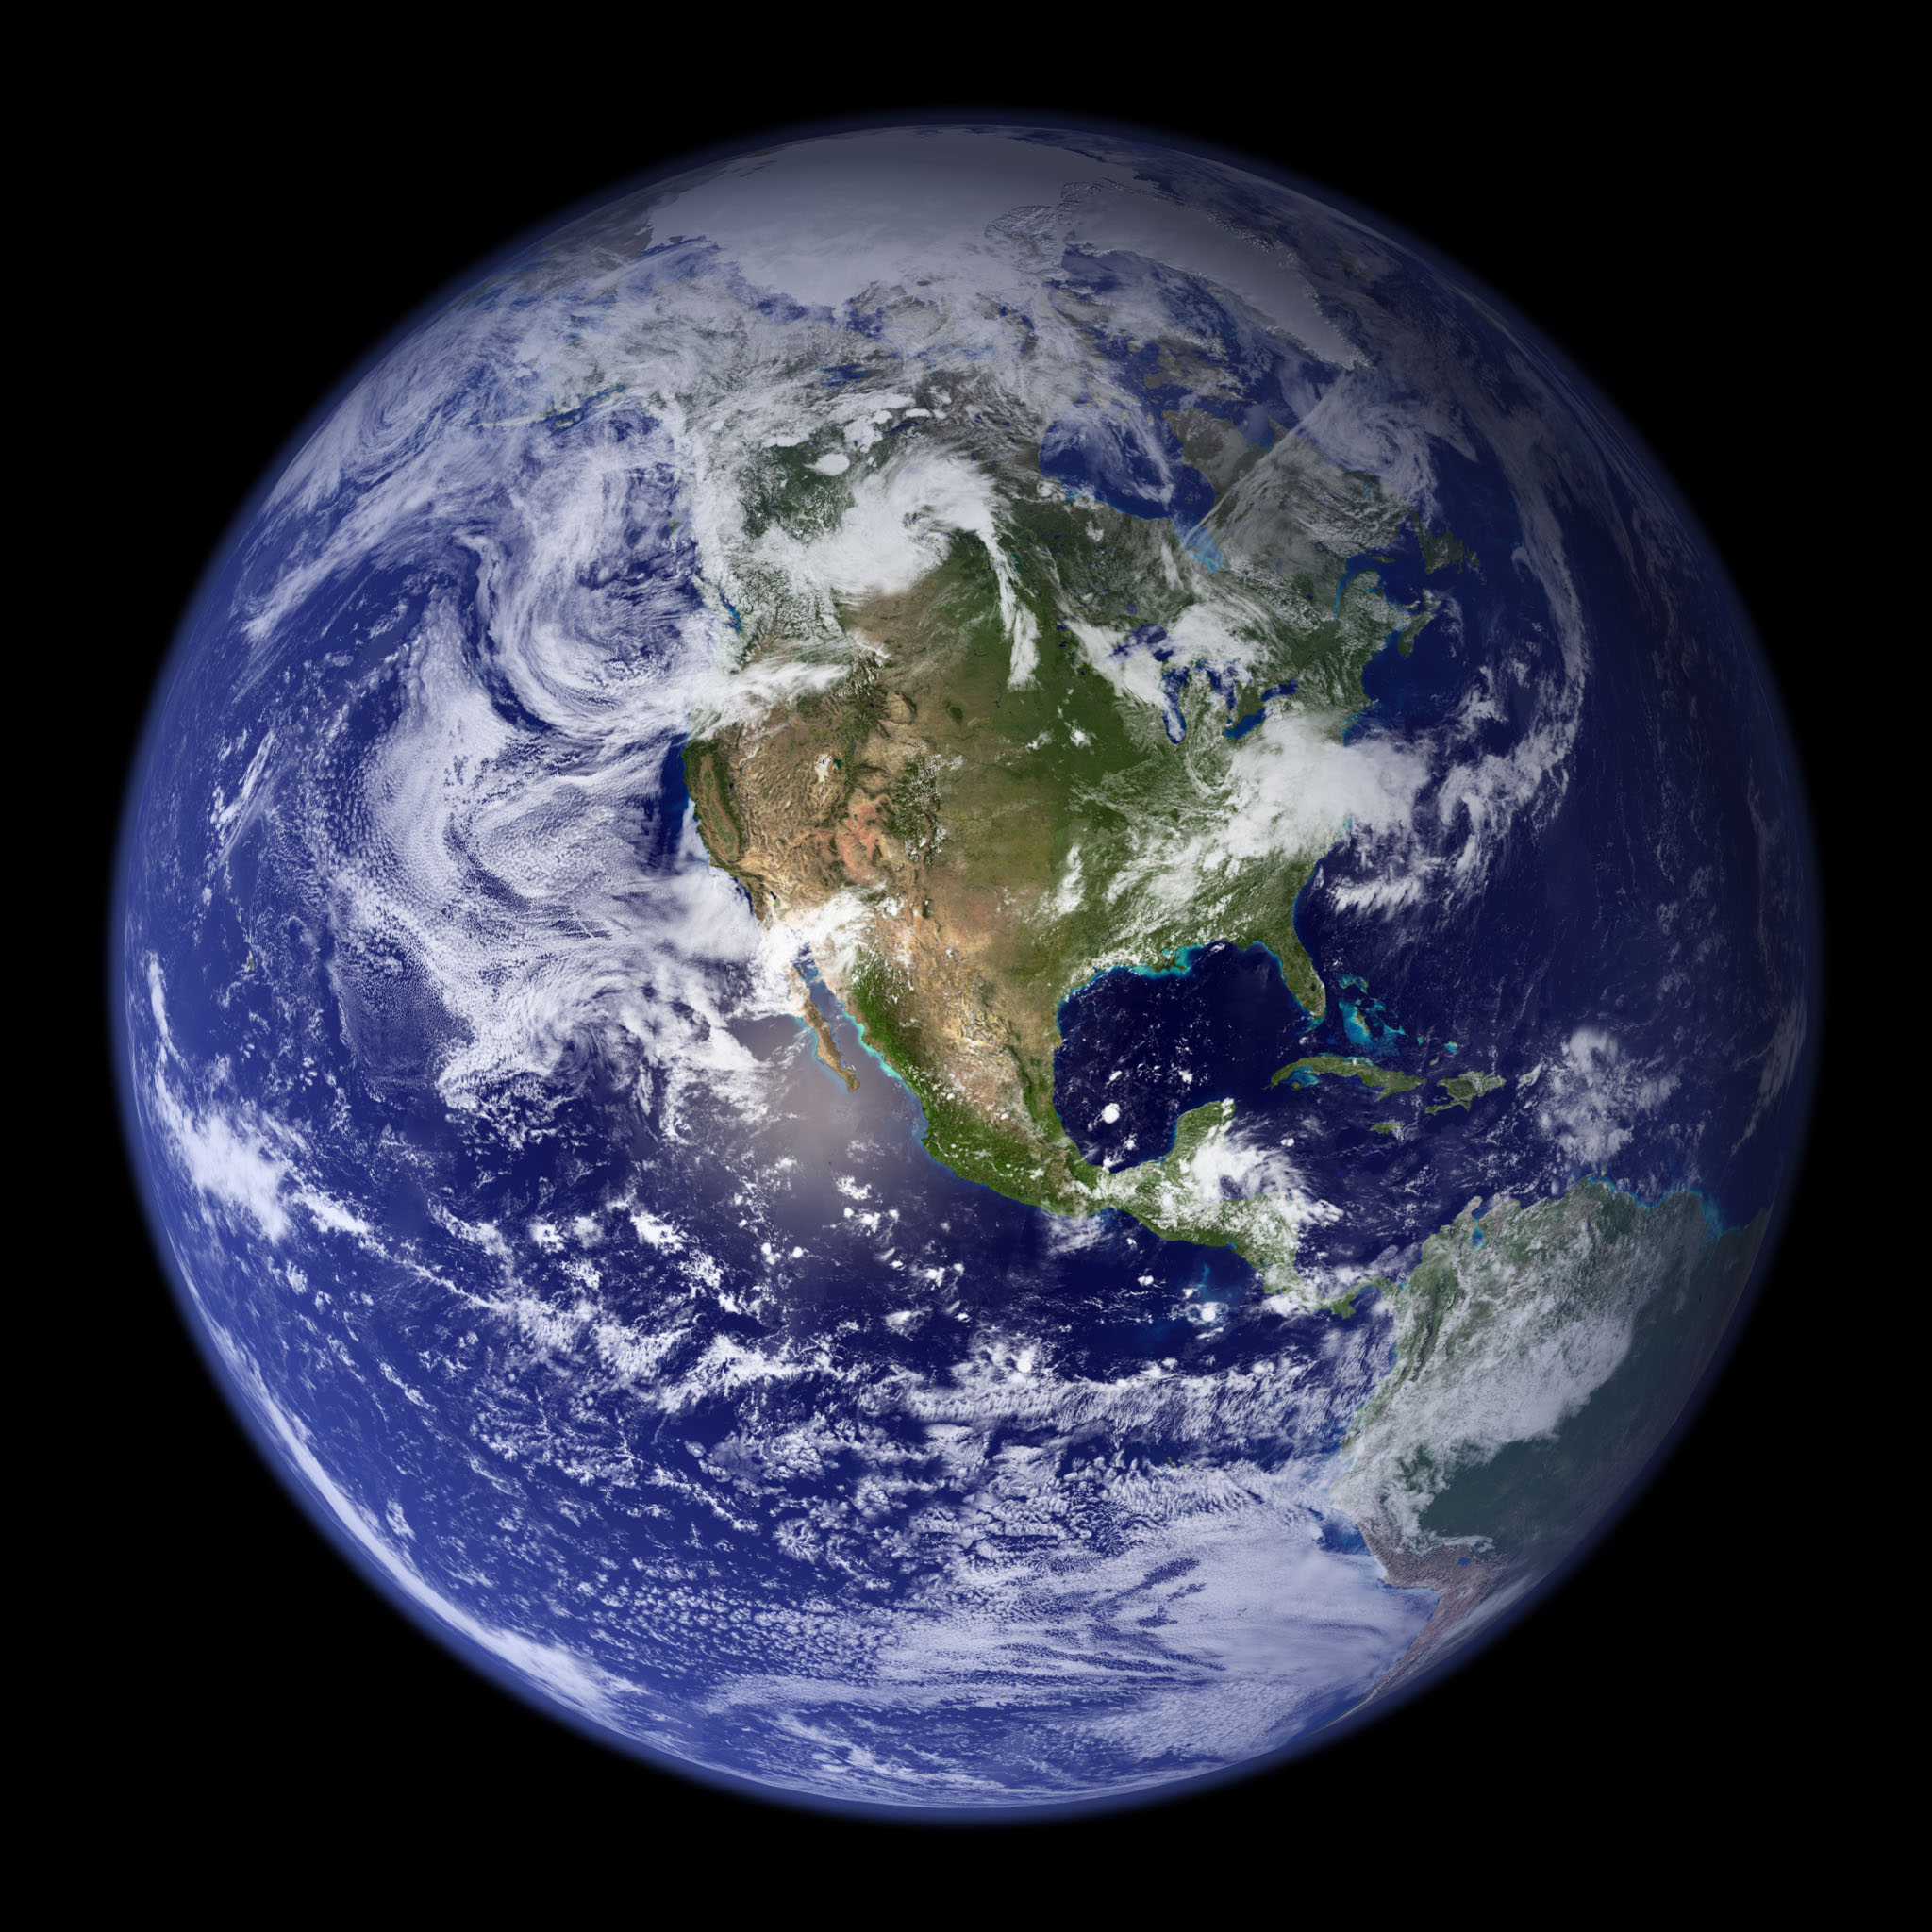 Earth view photo